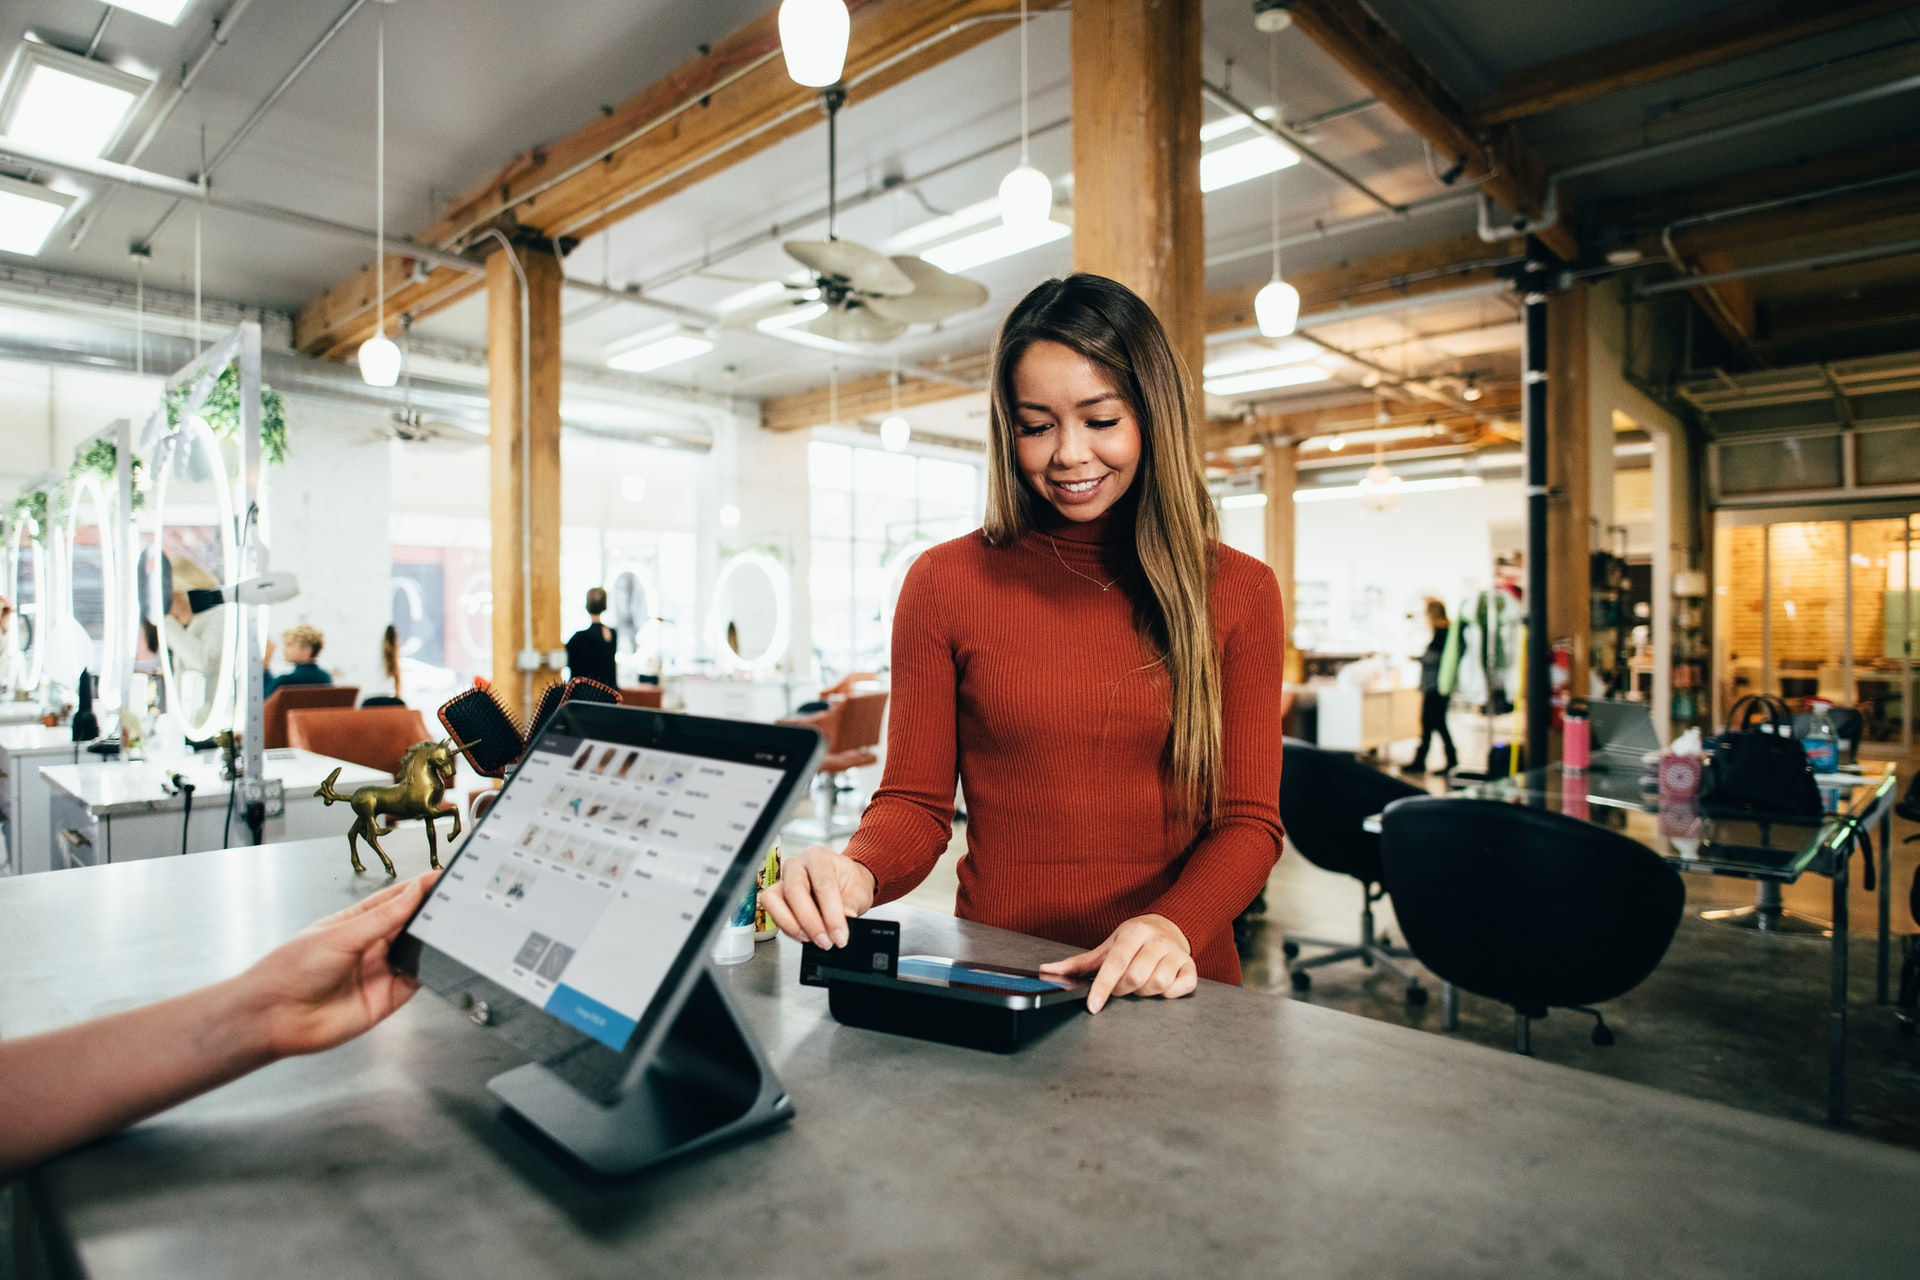 A woman in a red shirt uses her credit card at a cash register.